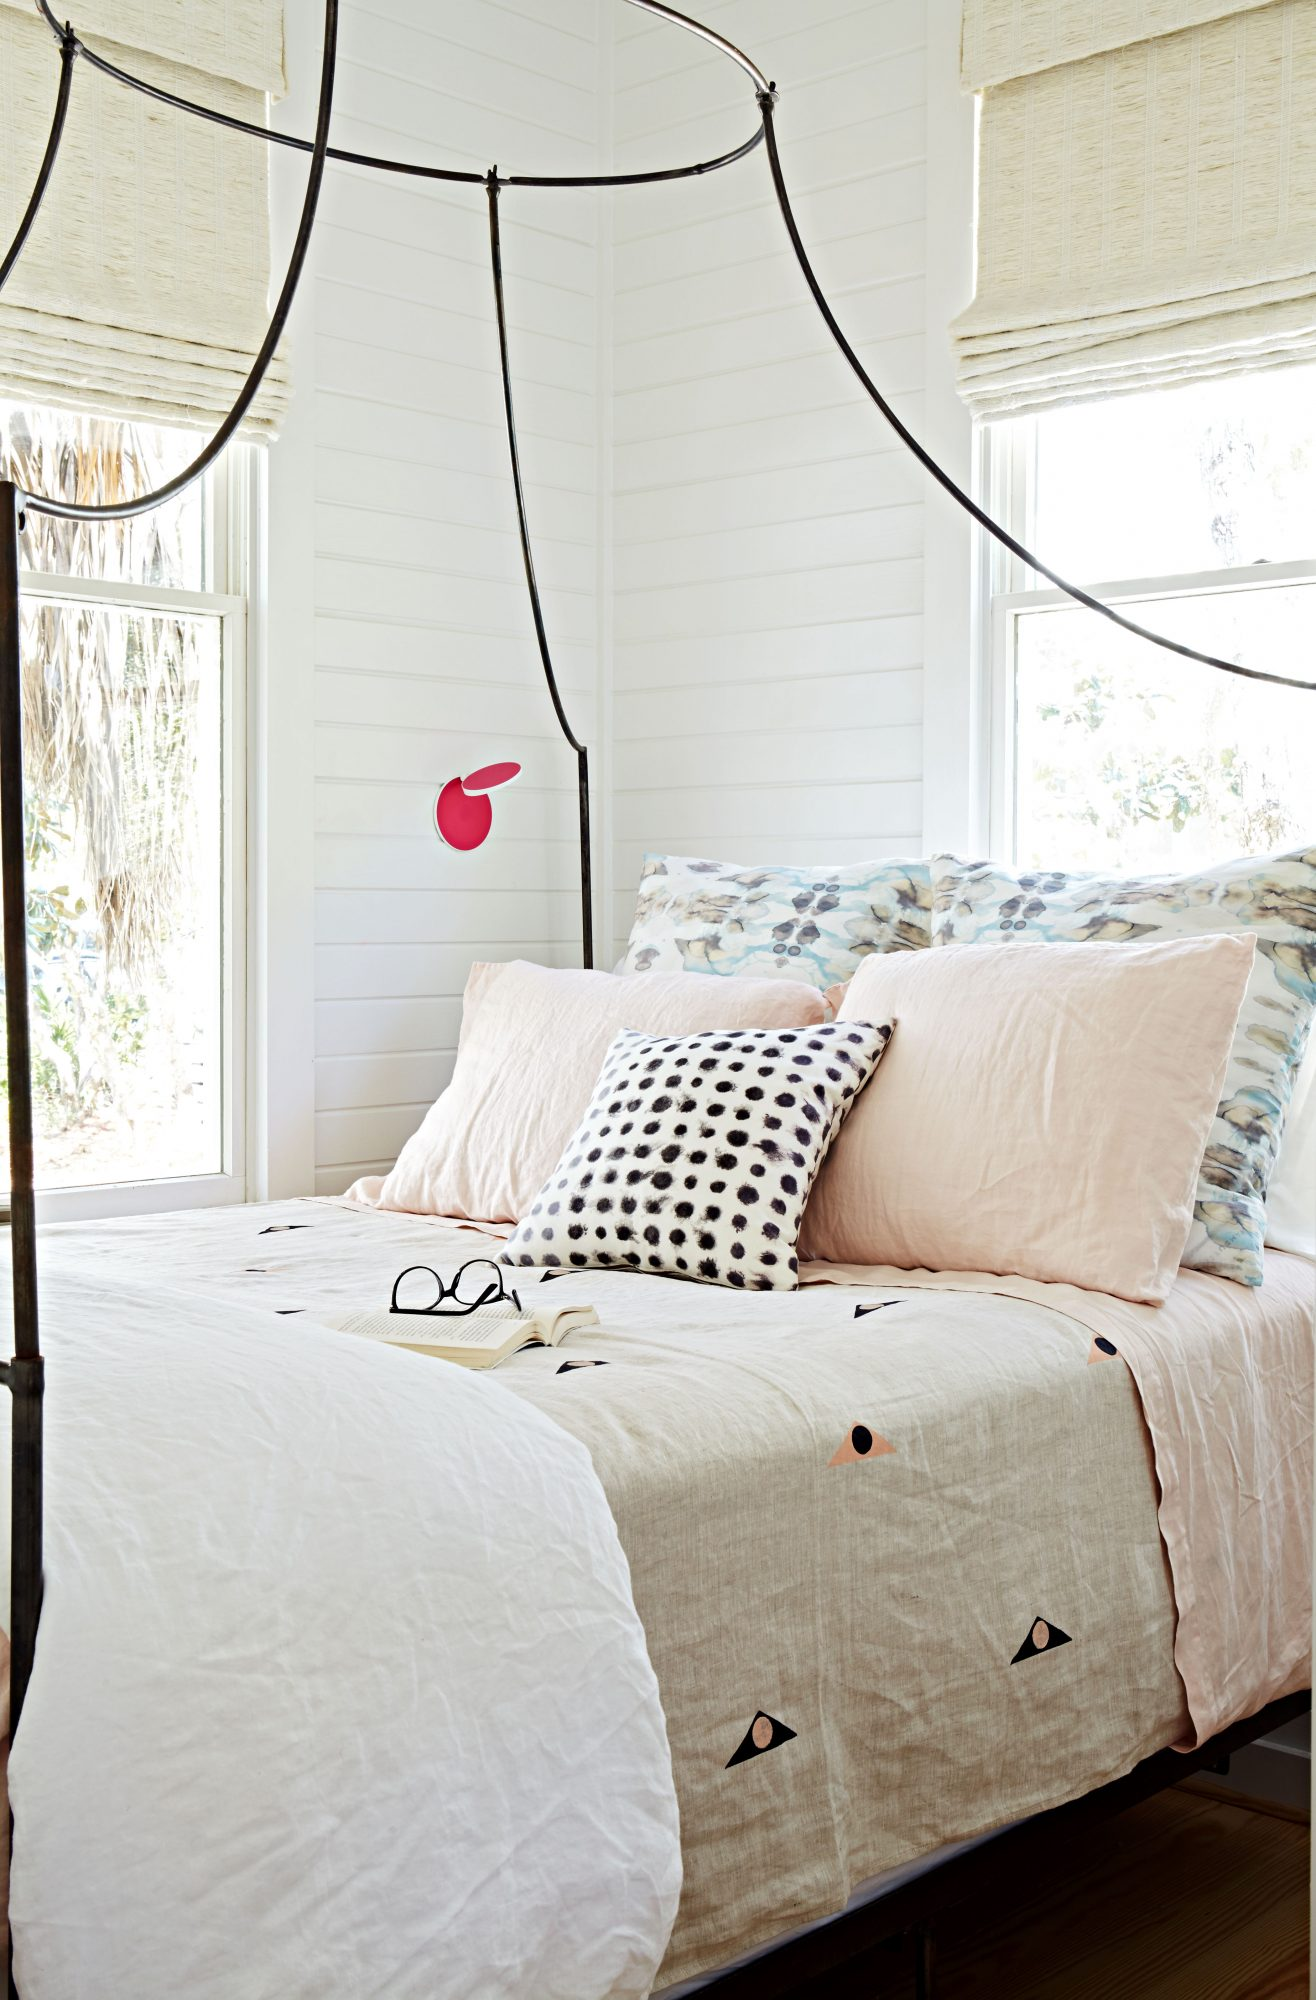 600 Square Foot Beach Cottage Master Bedroom with Canopy Bed